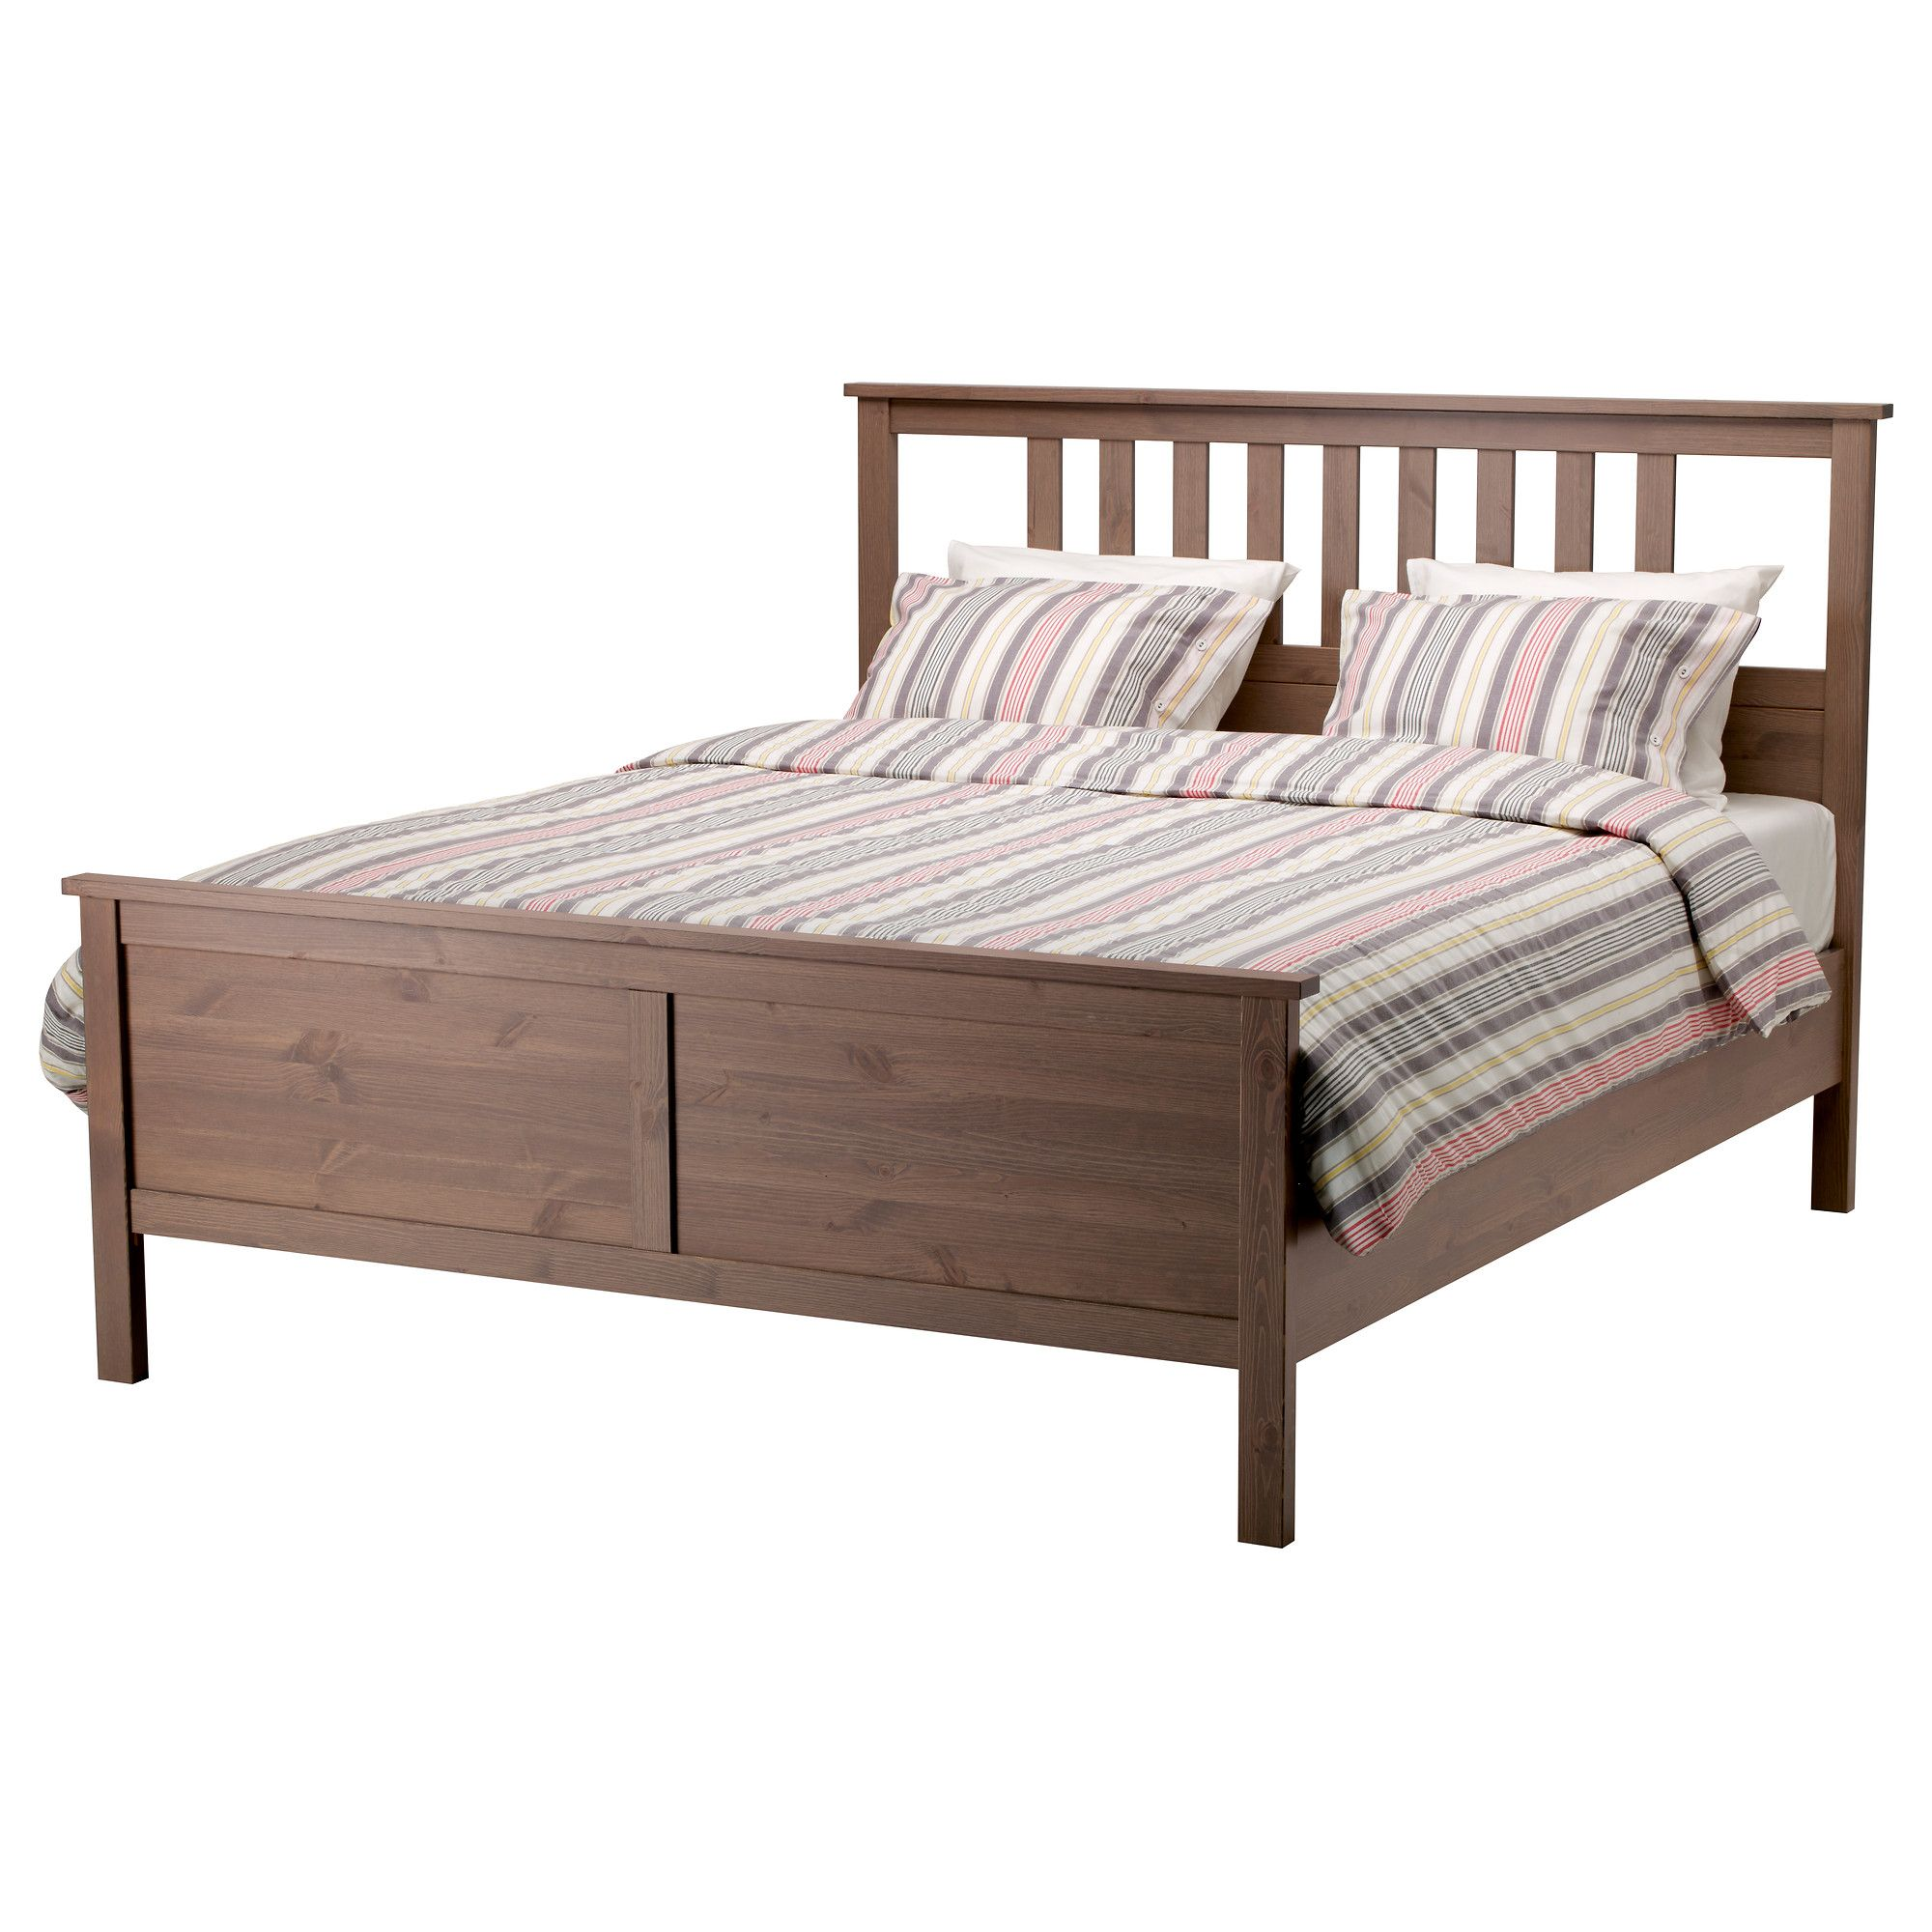 HEMNES Bed frame - Queen, - - IKEA $179- just a bed frame ...